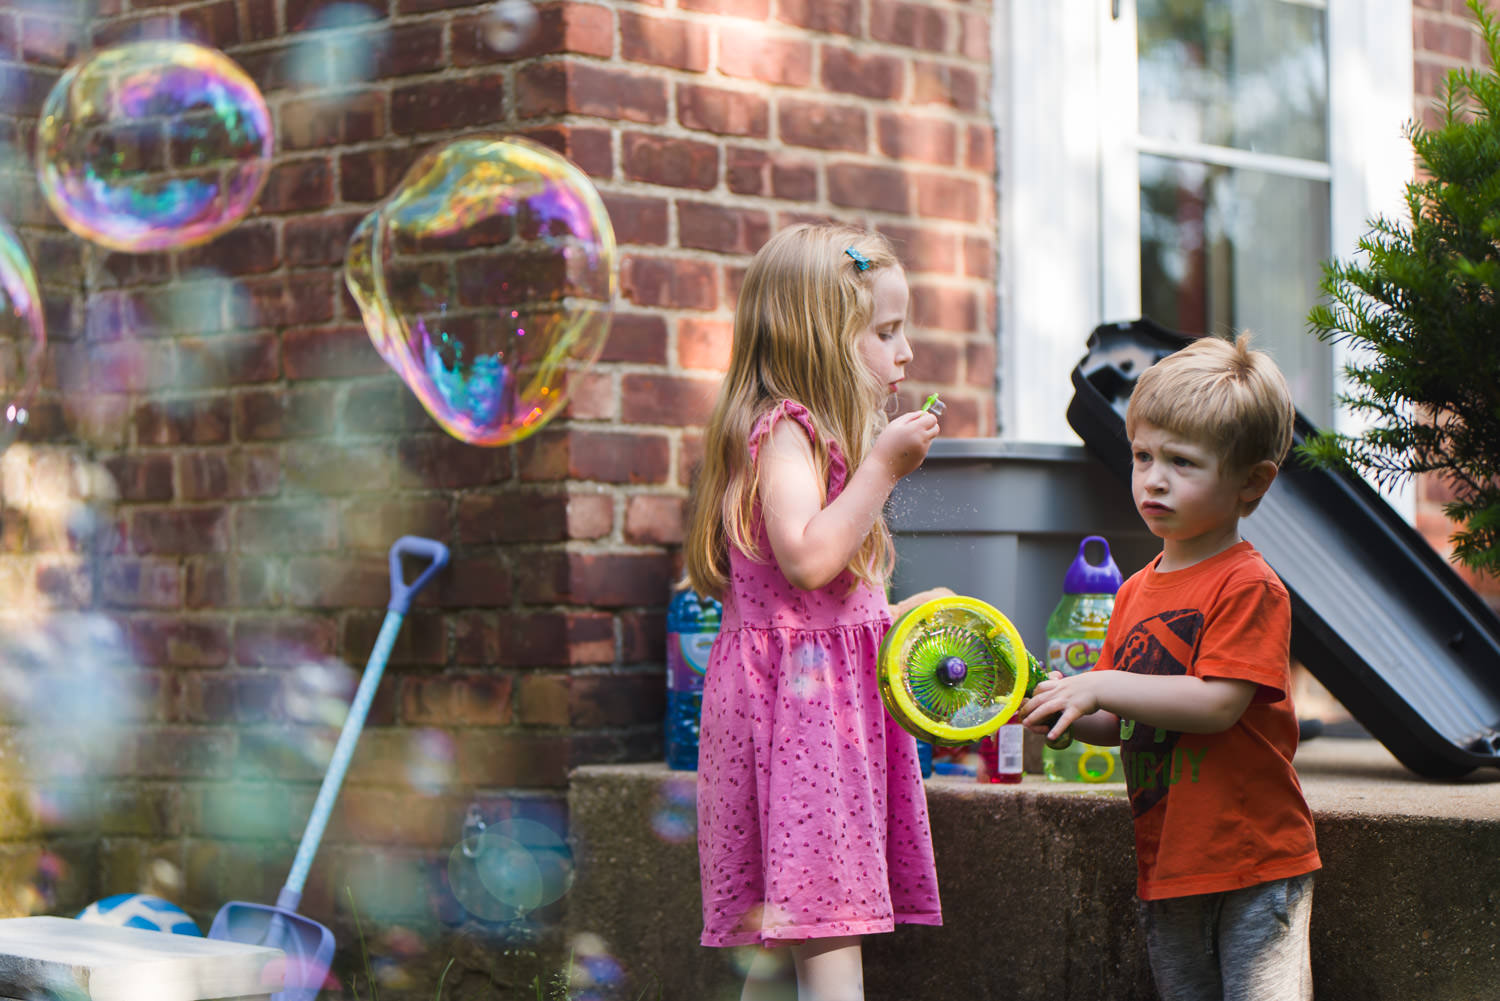 Kids blow bubbles in their front yard.